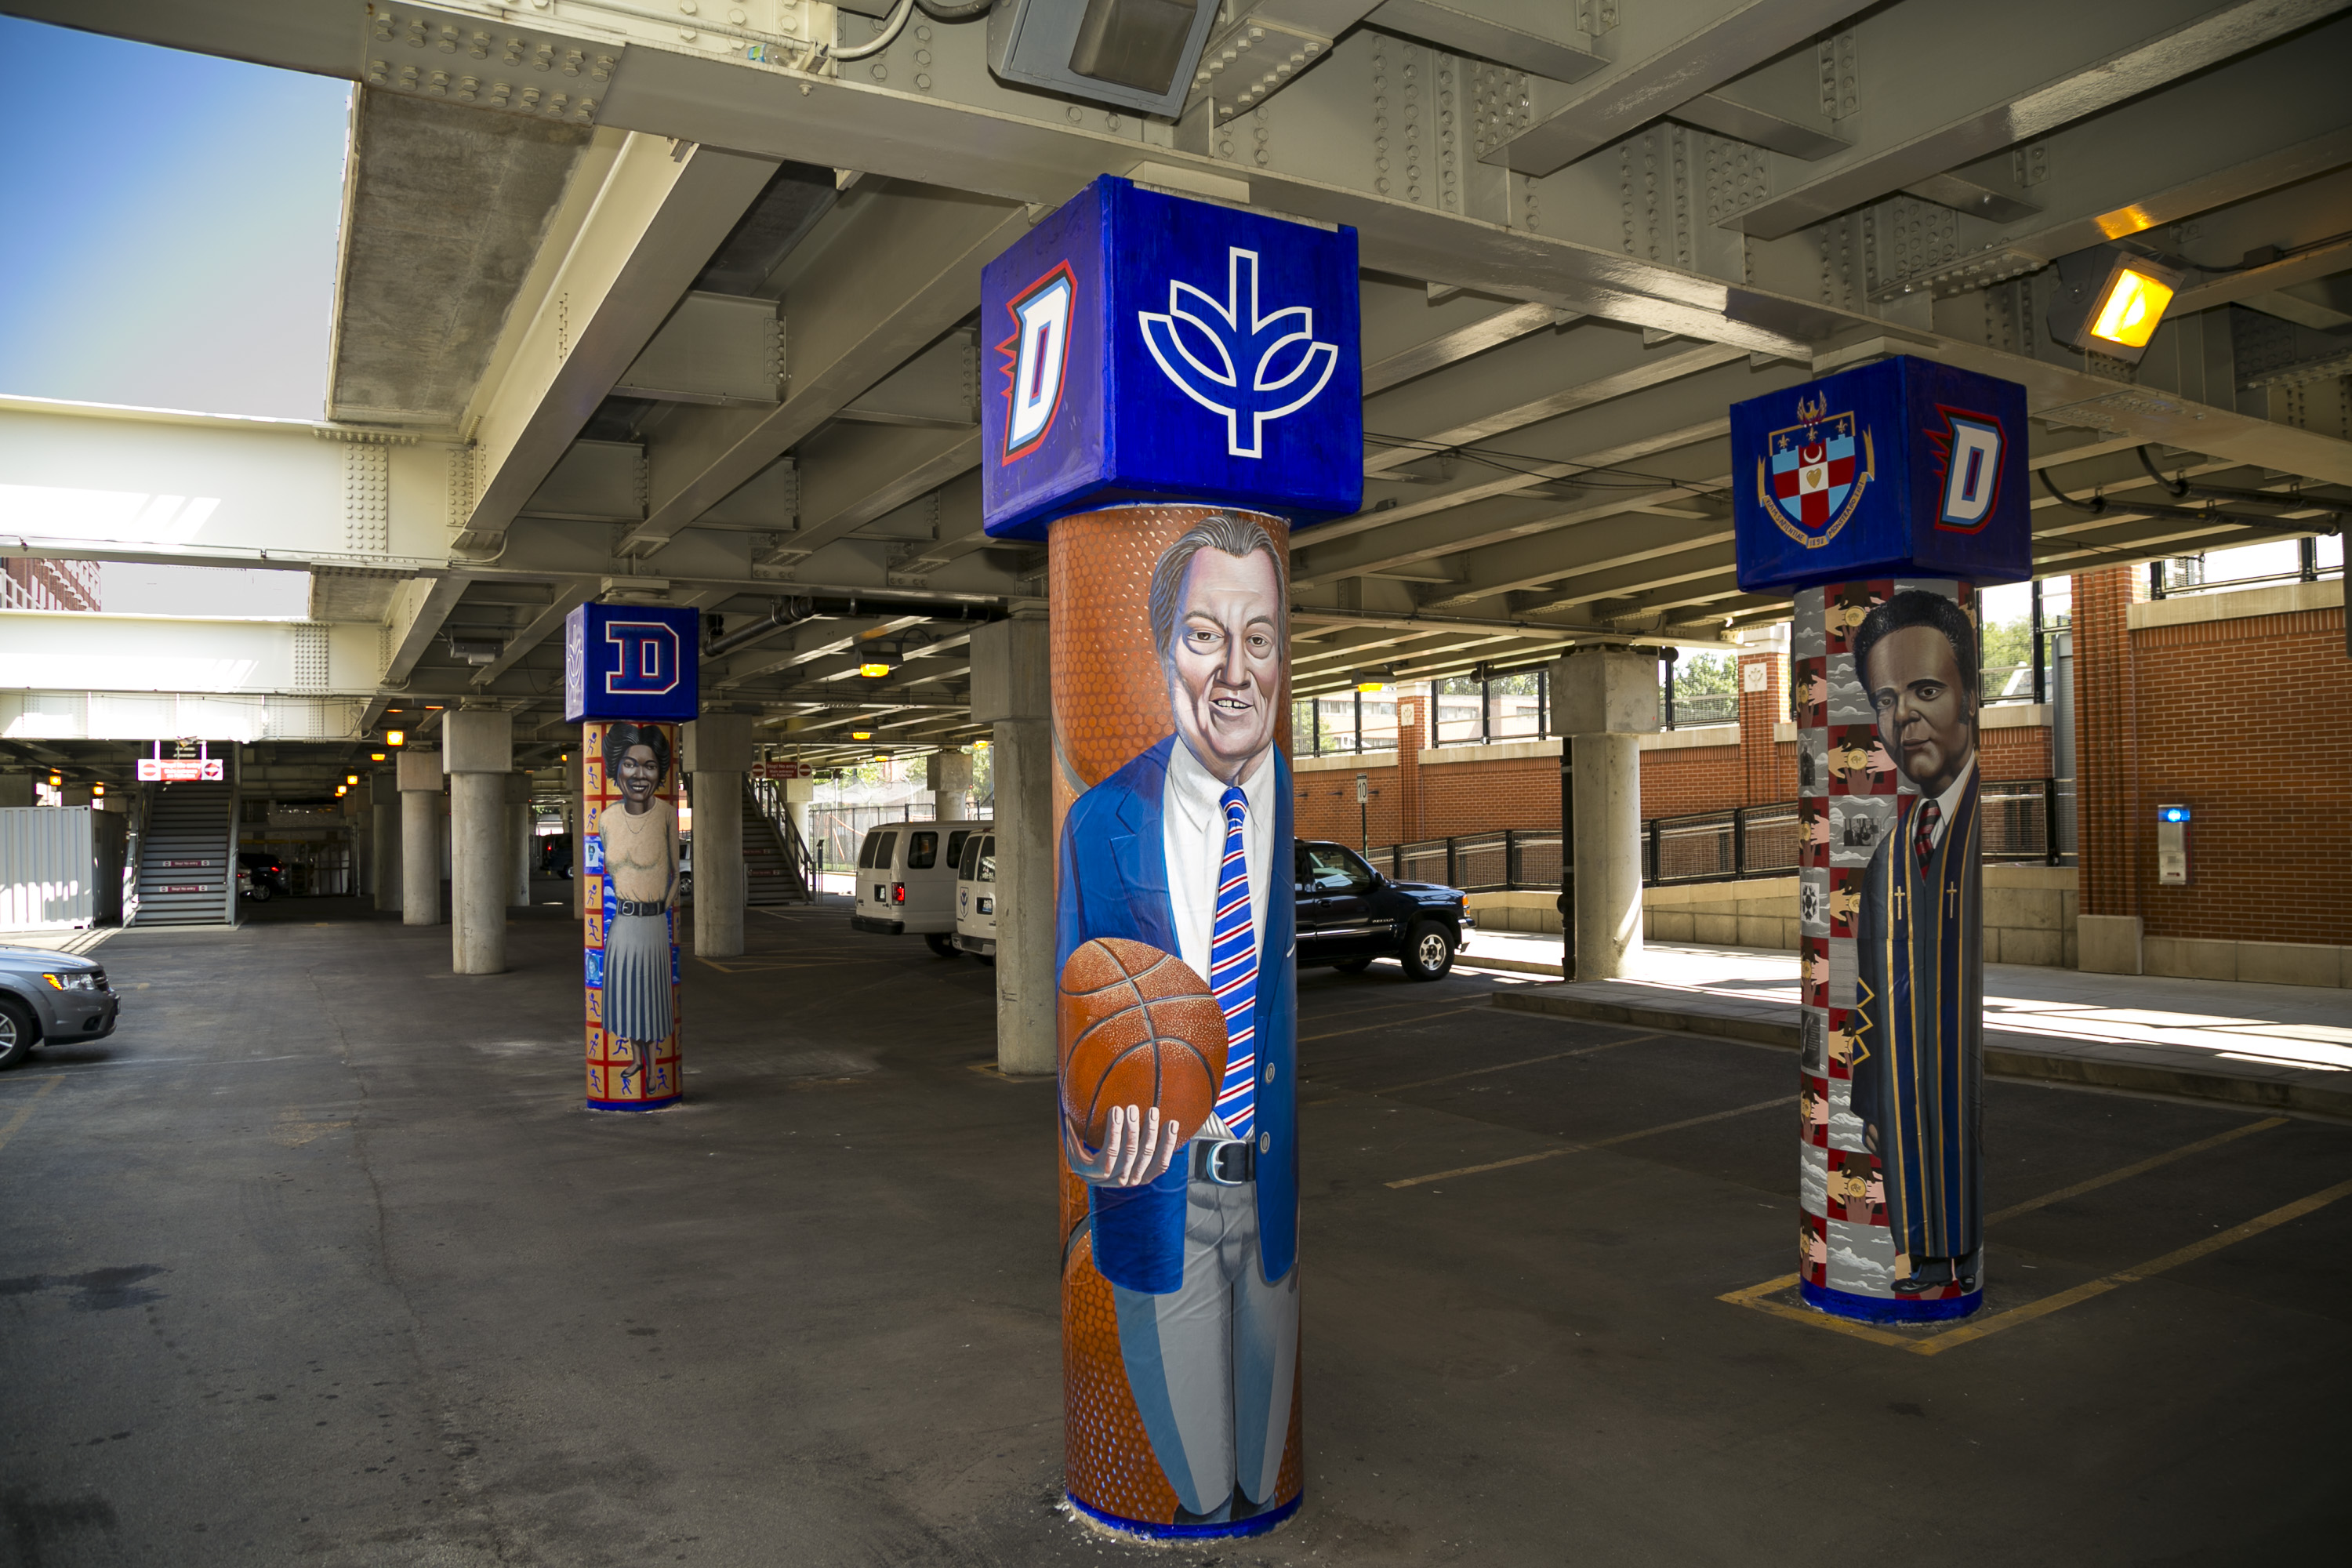 Historical figures from DePaul University past have been memorialized on actual pillars —in a murals painted on the columns beneath the Chicago Fullerton 'L' platform.  (DePaul University/Joel Dik)